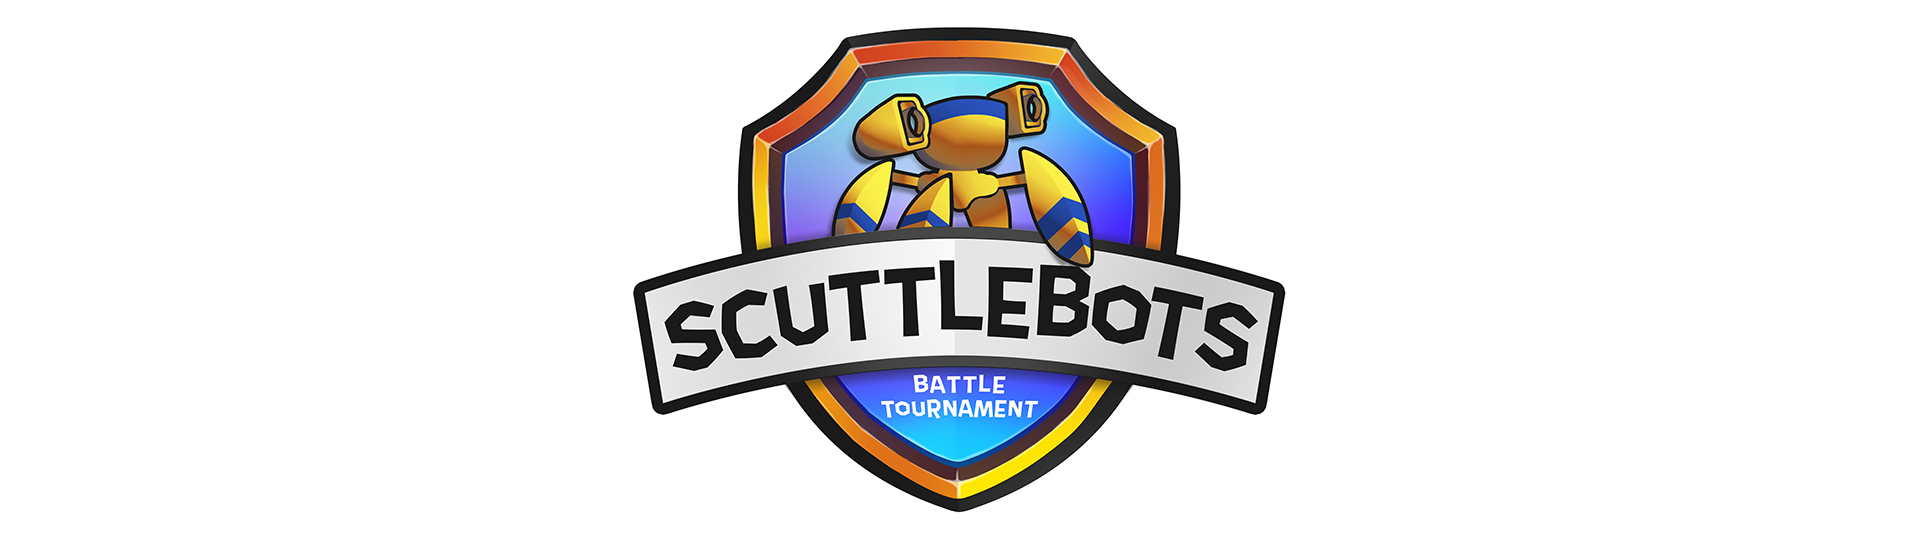 Scuttlebots - Battle Tournament